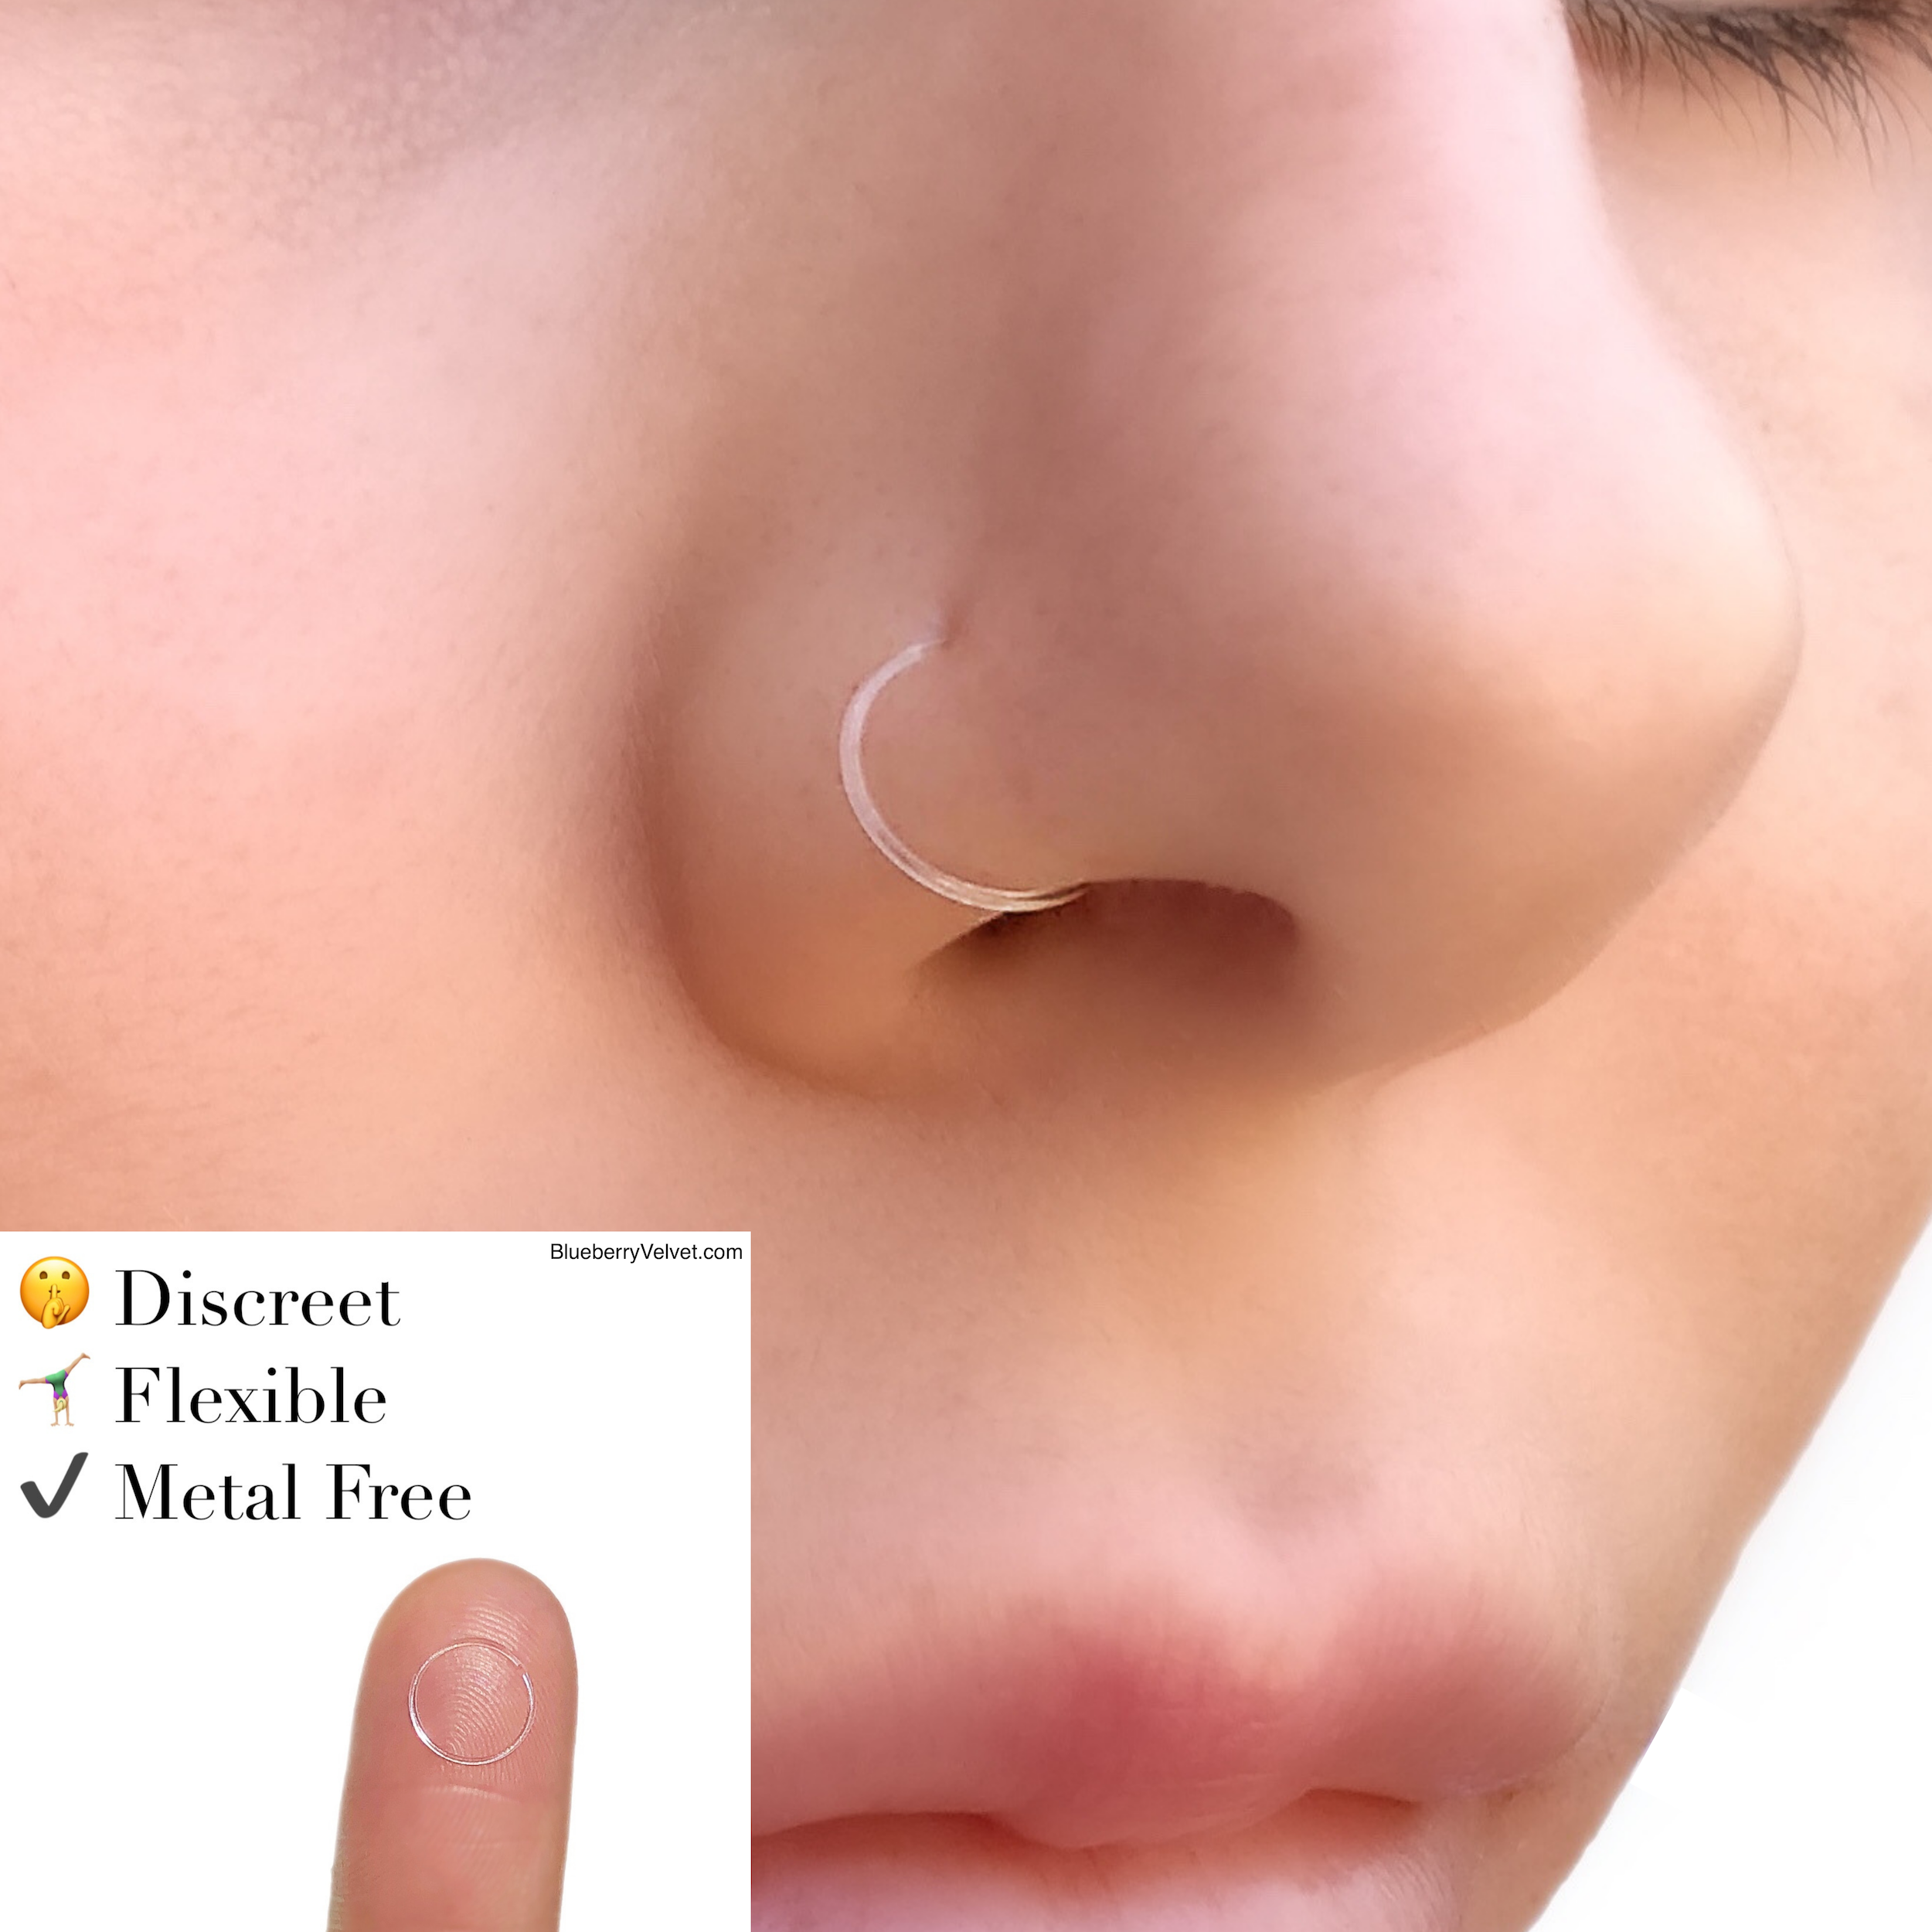 Clear Nose Ring Retainer Septum Ring Bioflex Clear Nose Stud Etsy Piercing Retainers Nose Stud Nose Piercing